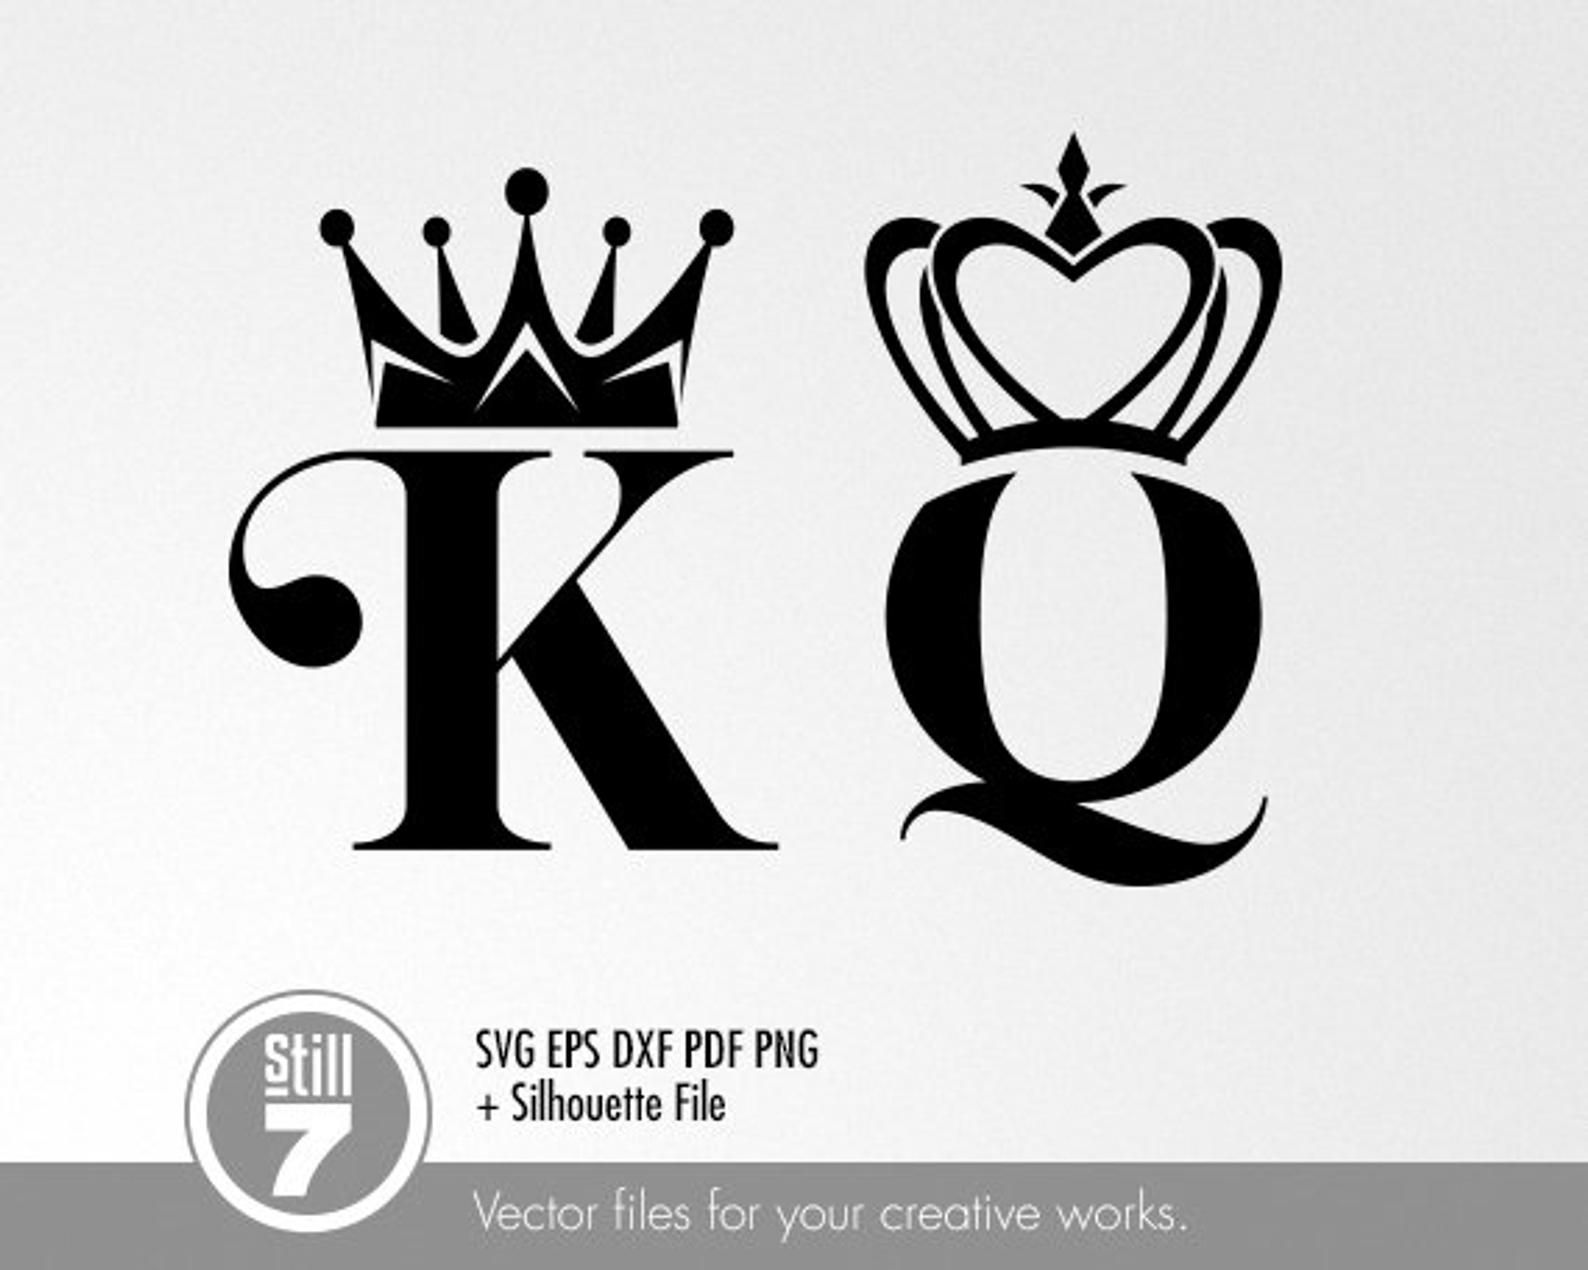 King Queen Crown Crowns Heart Spade Svg Dxf Png Jpg Digital Cut File For Cutting Machines Personal Commercial Silhouette Cameo Cricut Vozeli Com